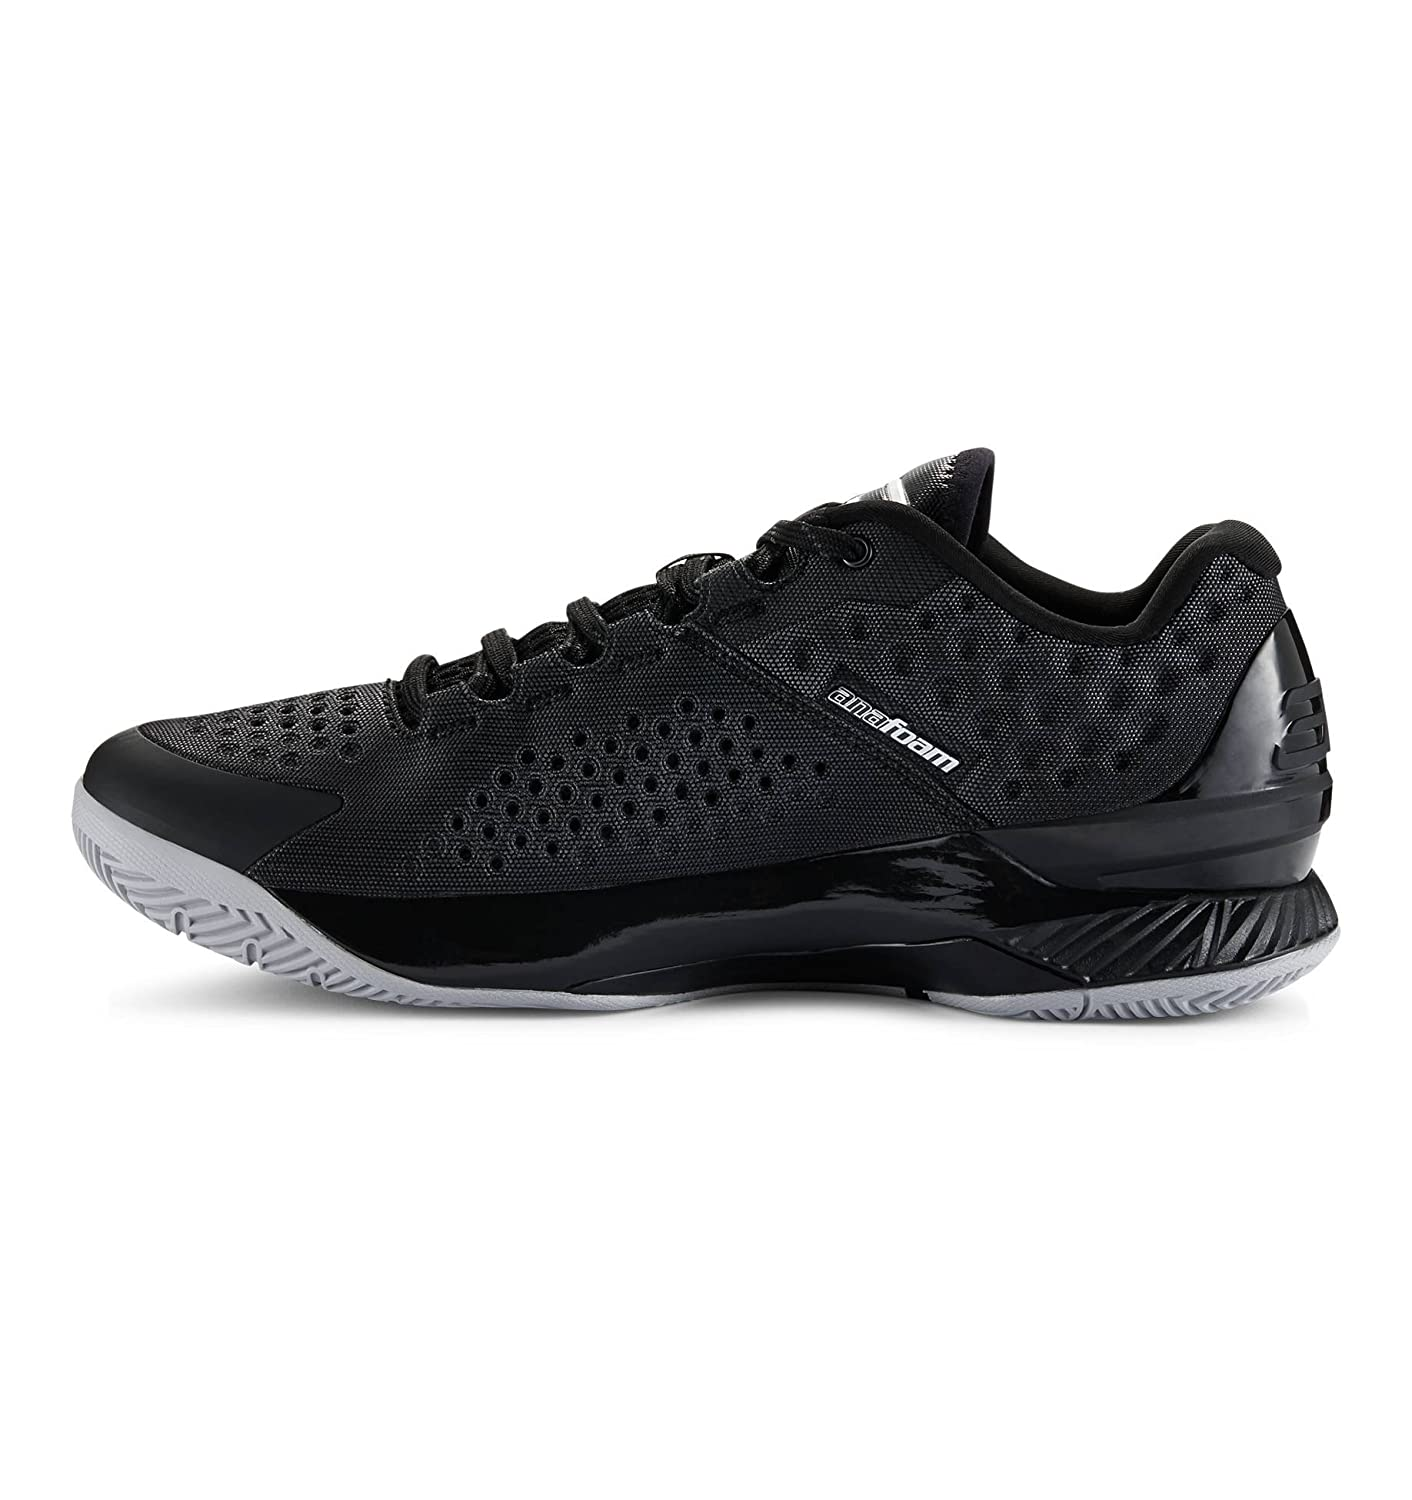 Menns Under Armour Sko Amazon mlAQ9nU